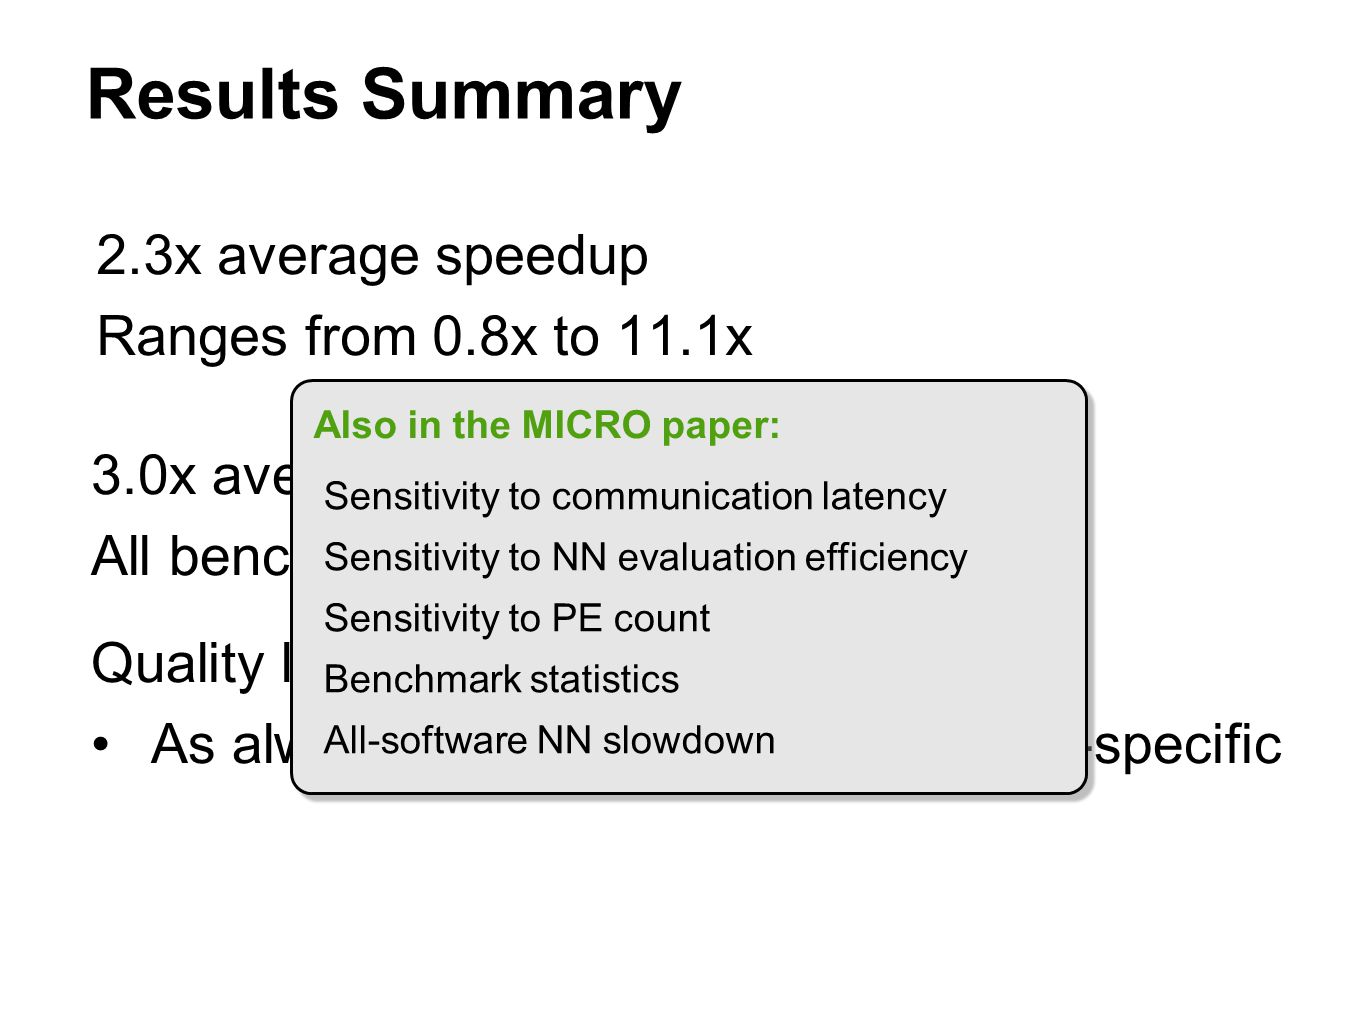 Results Summary 2.3x average speedup Ranges from 0.8x to 11.1x 3.0x average energy reduction All benchmarks benefit Quality loss below 10% in all cases As always, quality metrics application-specific Also in the MICRO paper: Sensitivity to communication latency Sensitivity to NN evaluation efficiency Sensitivity to PE count Benchmark statistics All-software NN slowdown